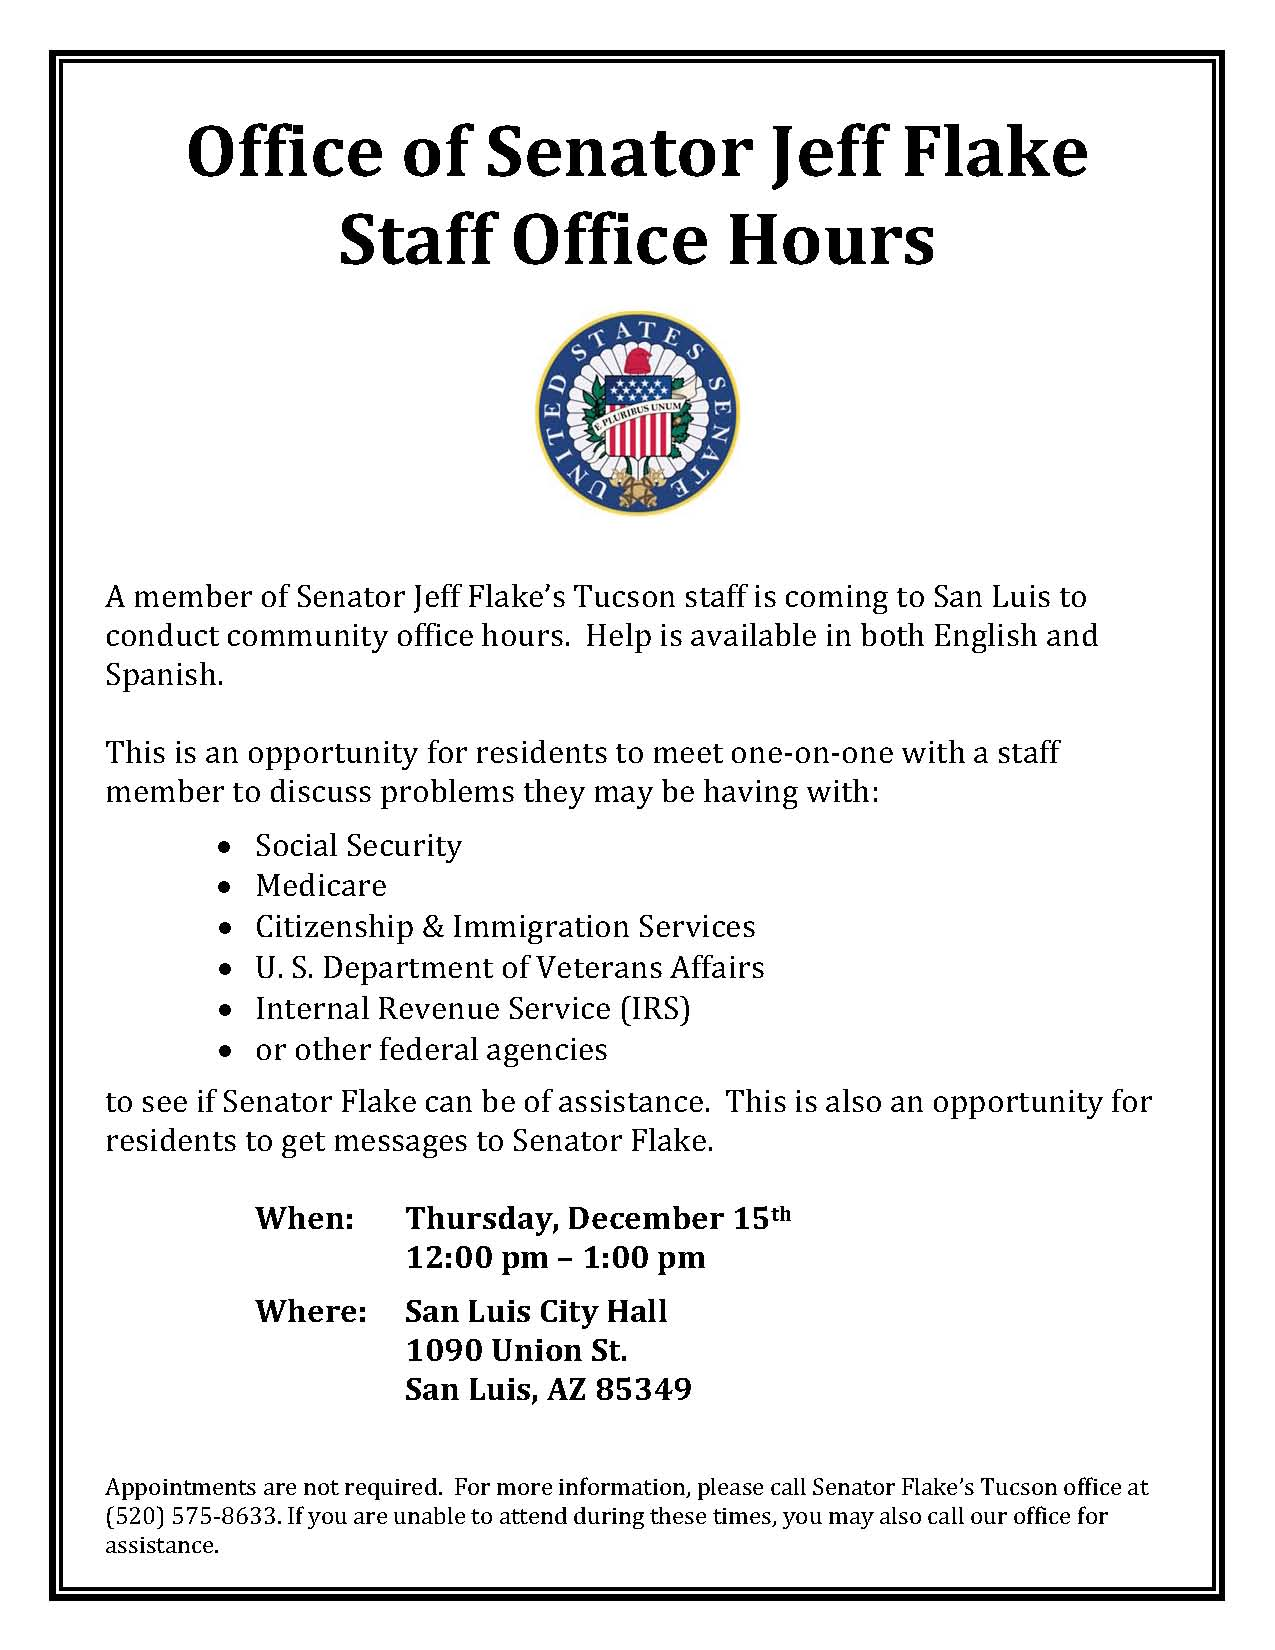 San Luis Flake Staff Office Hours 12-15-16